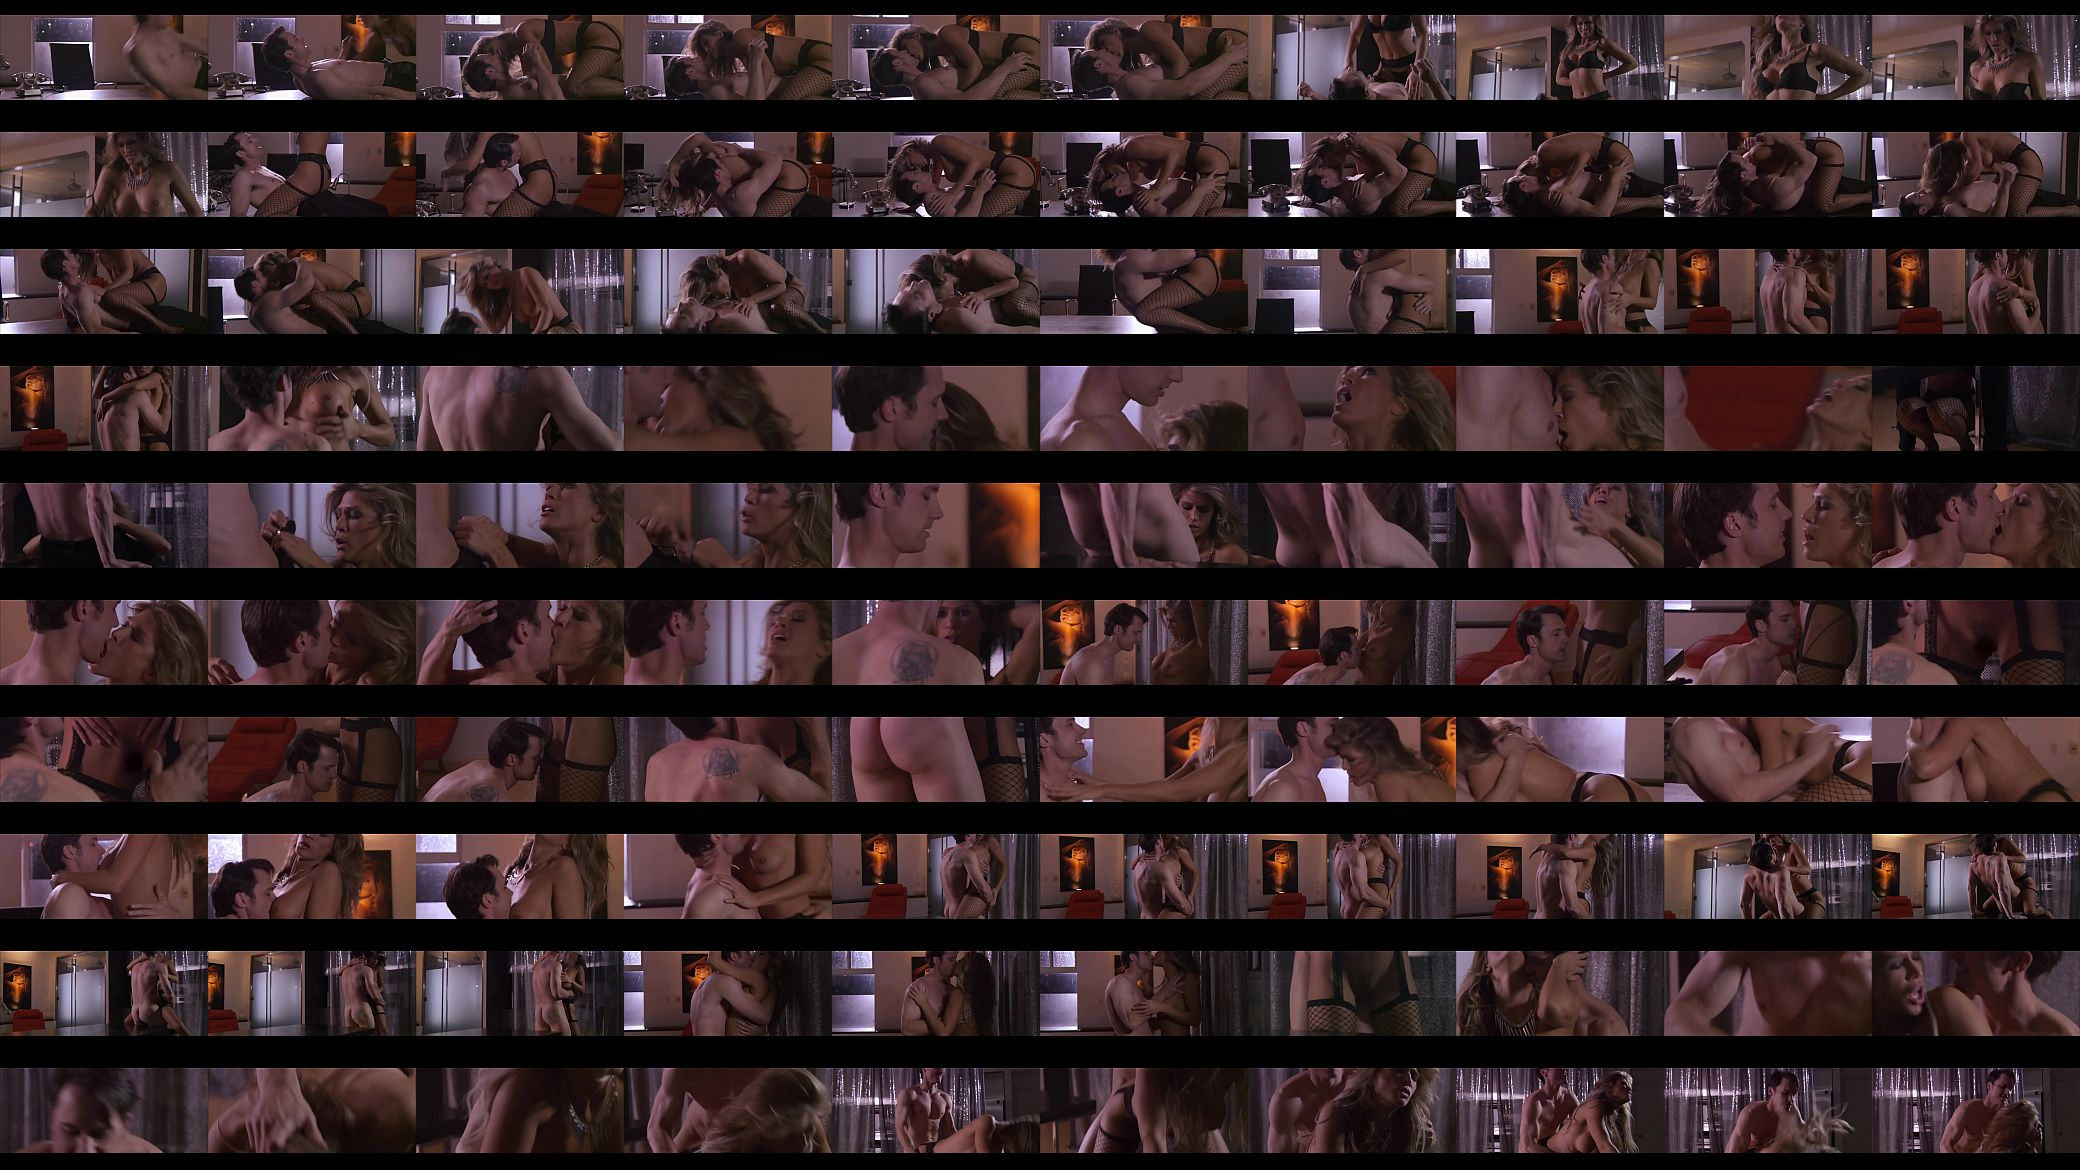 Amber Smith Porn Videos amber smith in lingerie 2010 - xnxx